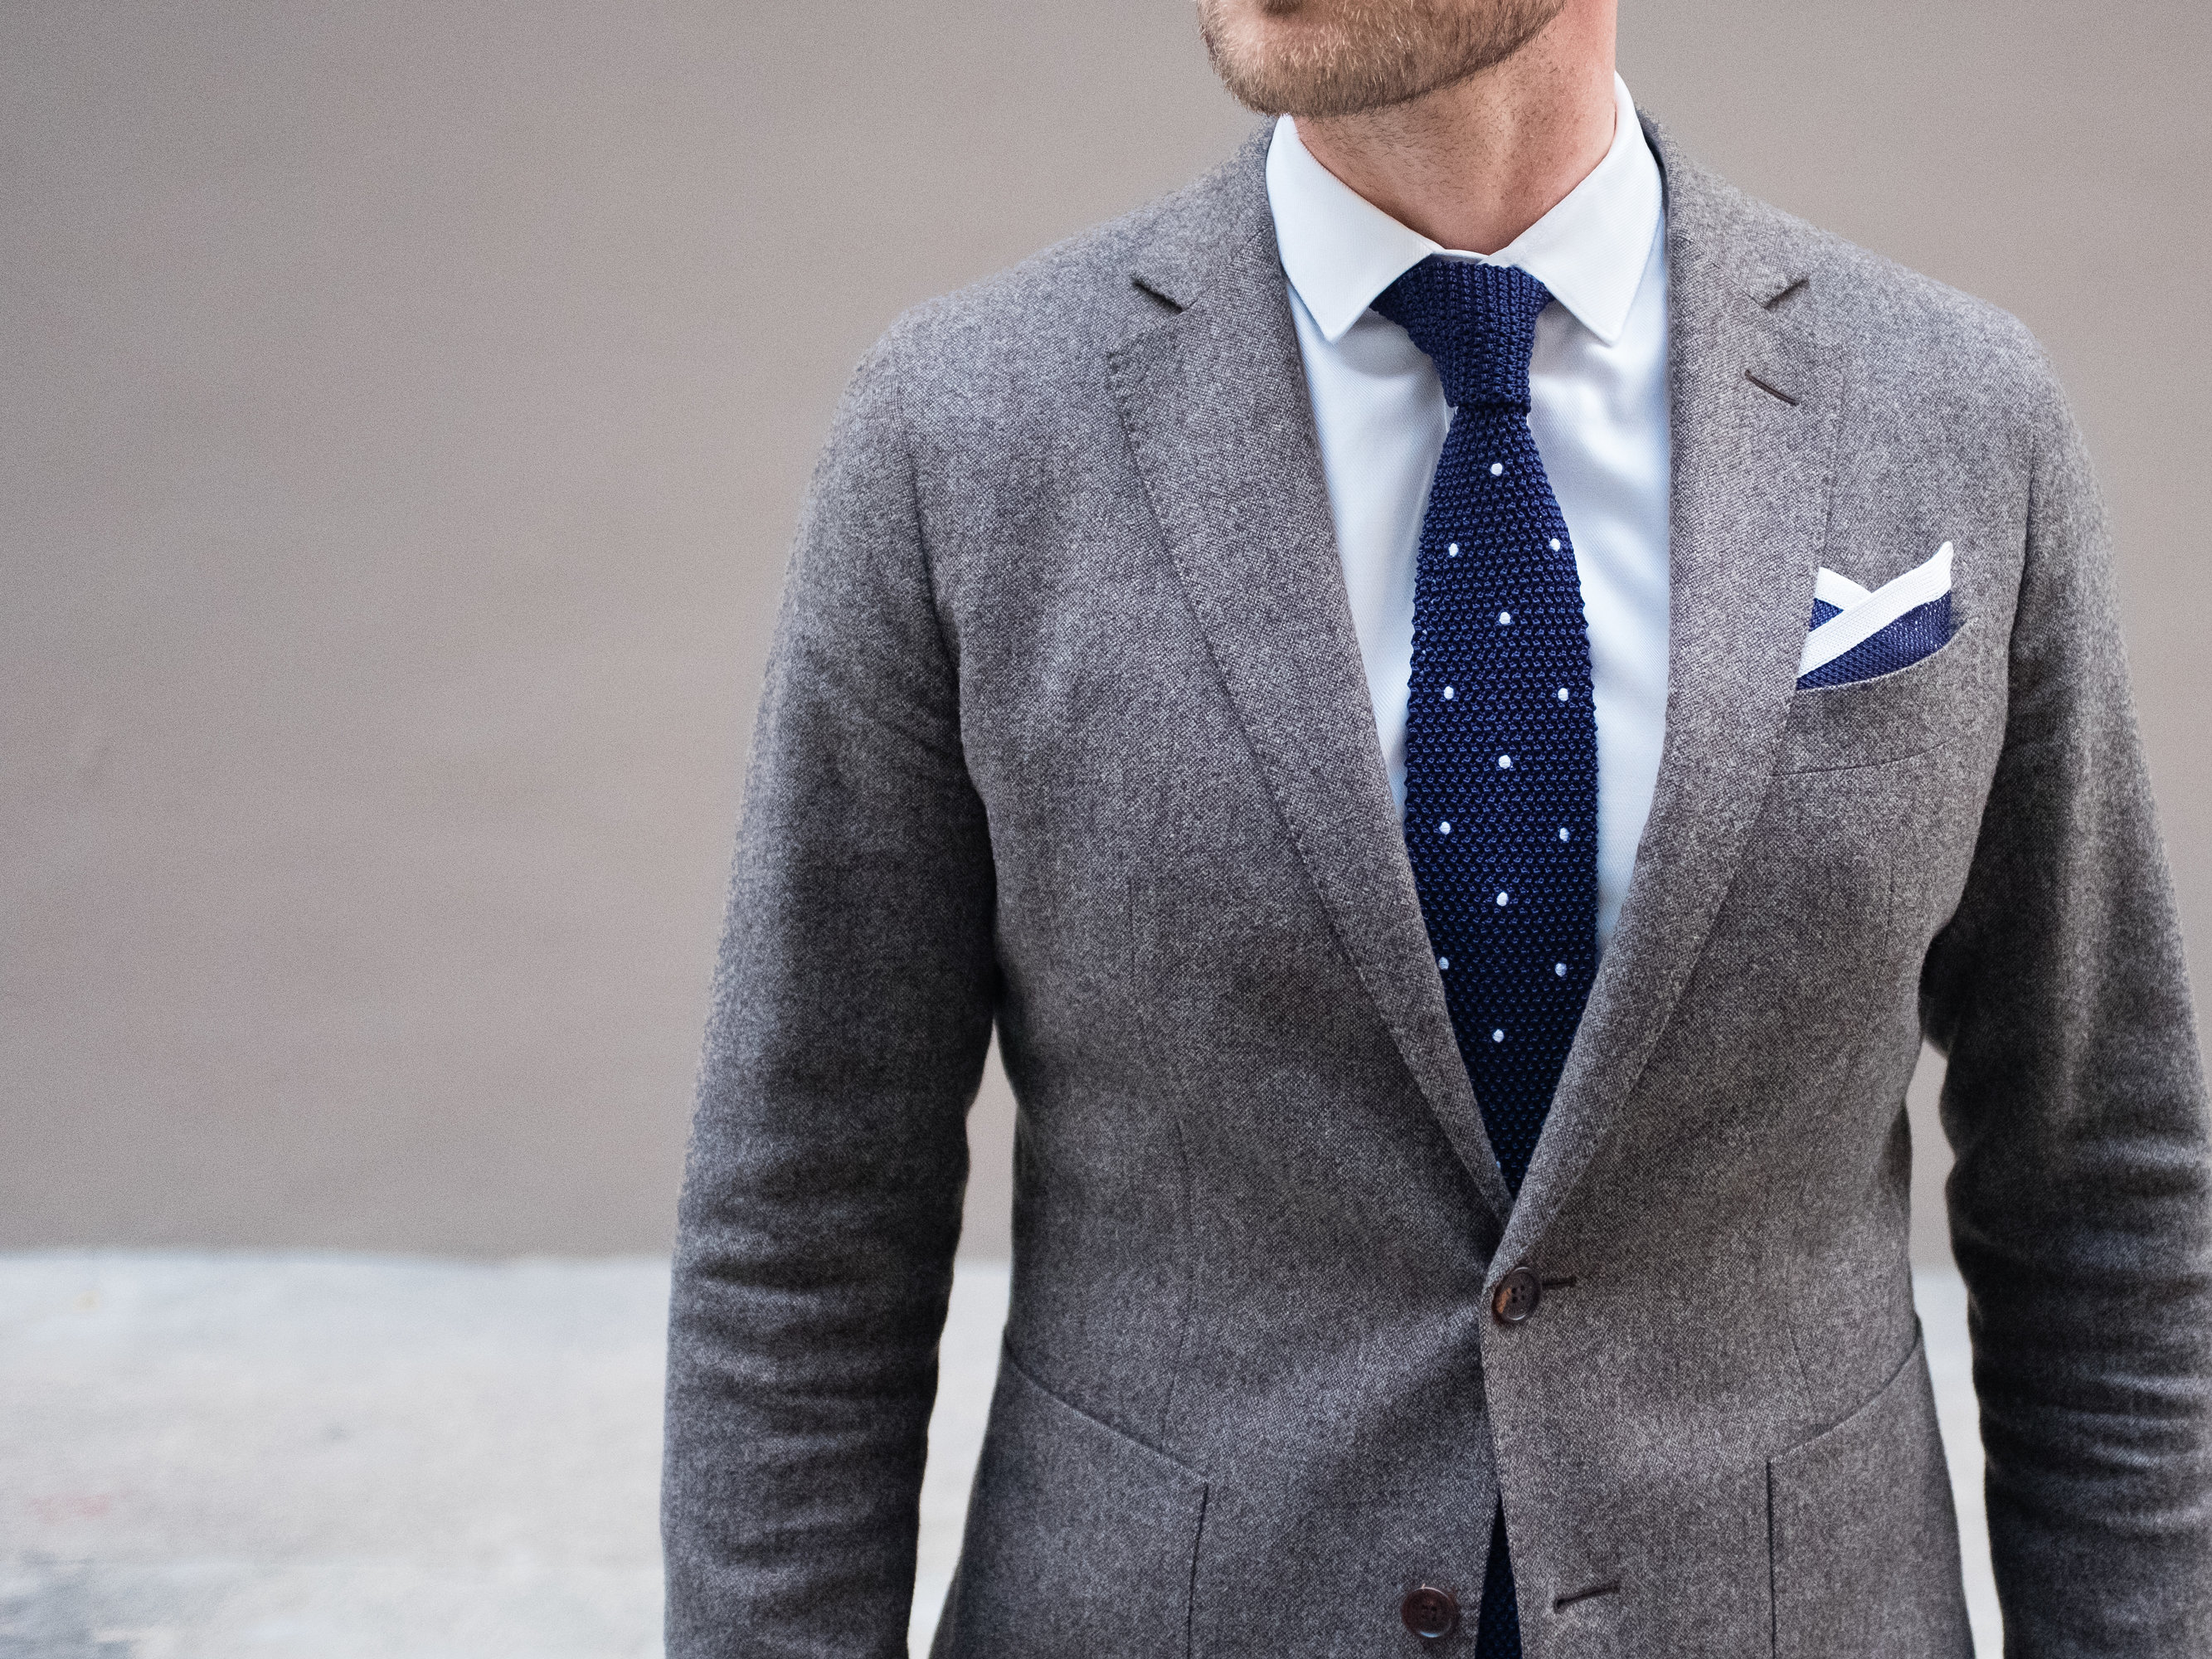 once a day_email_knitted tie pocket (1 of 1)-3.jpg